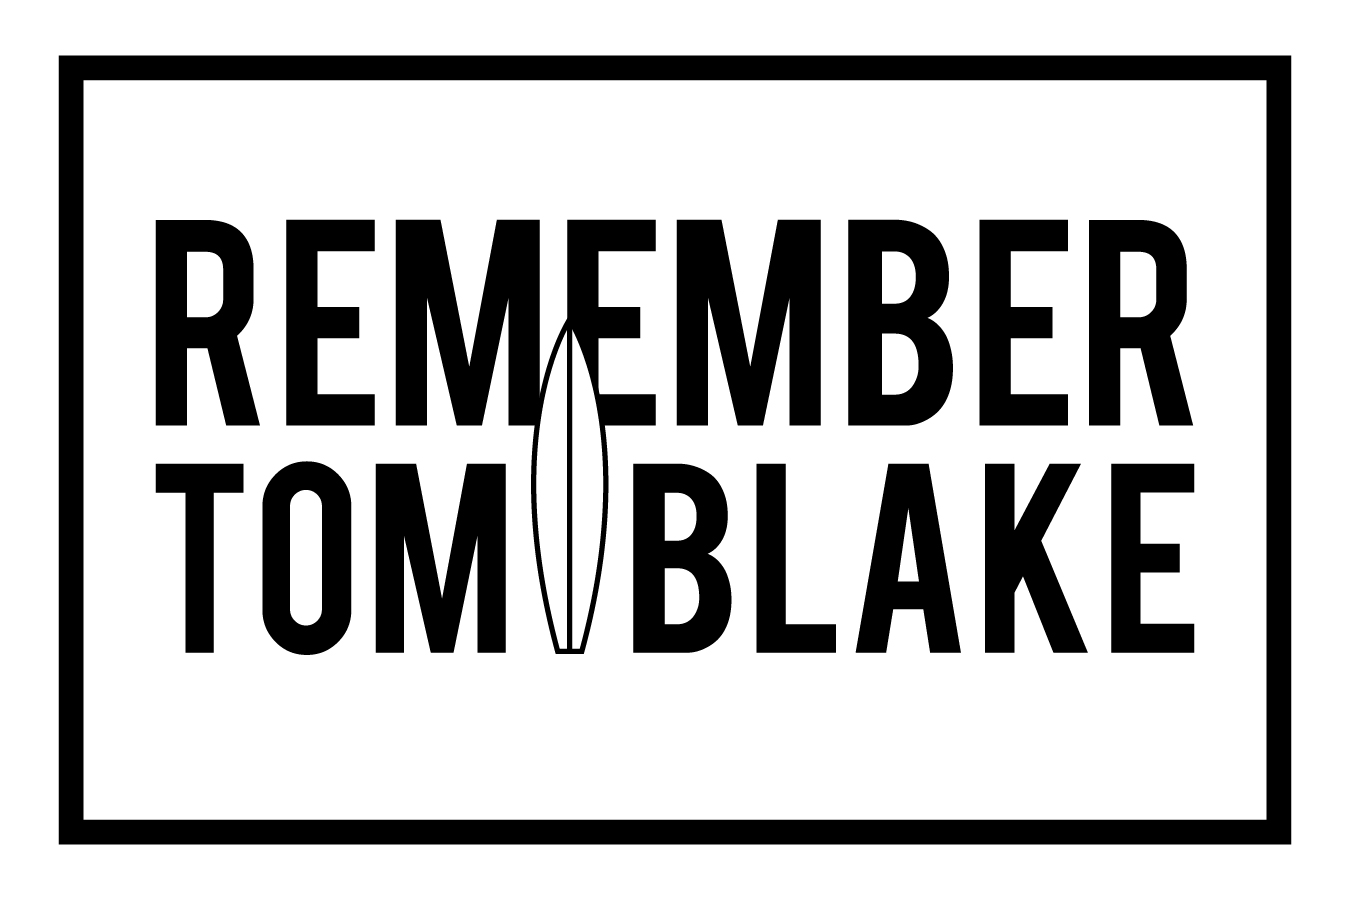 Remember Tom Blake